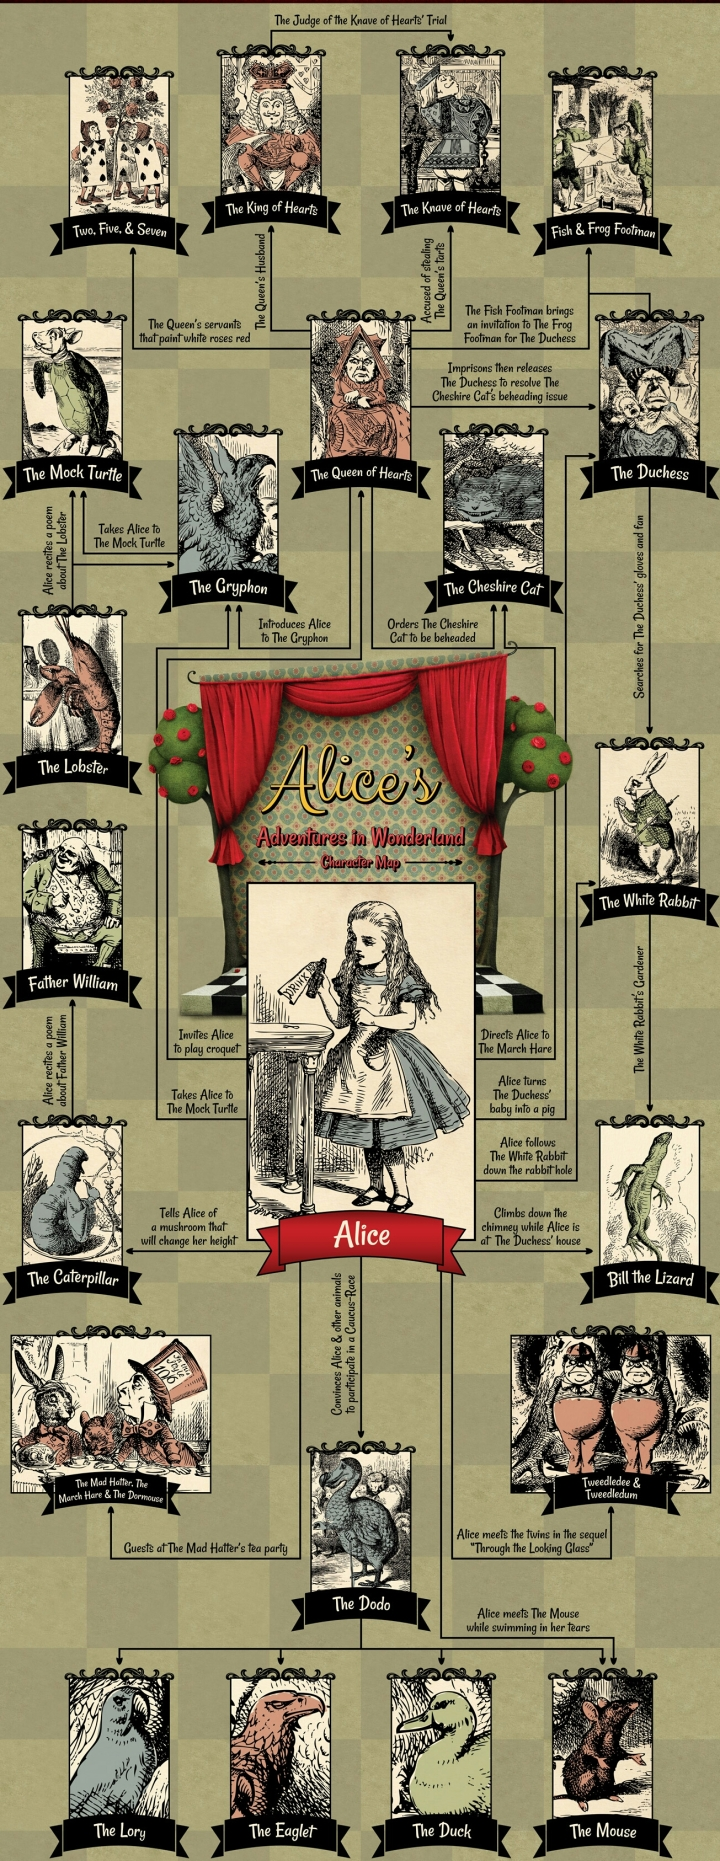 wpid-alices-adventures-in-wonderland-character-map_51ddde422aa9c-1.jpg